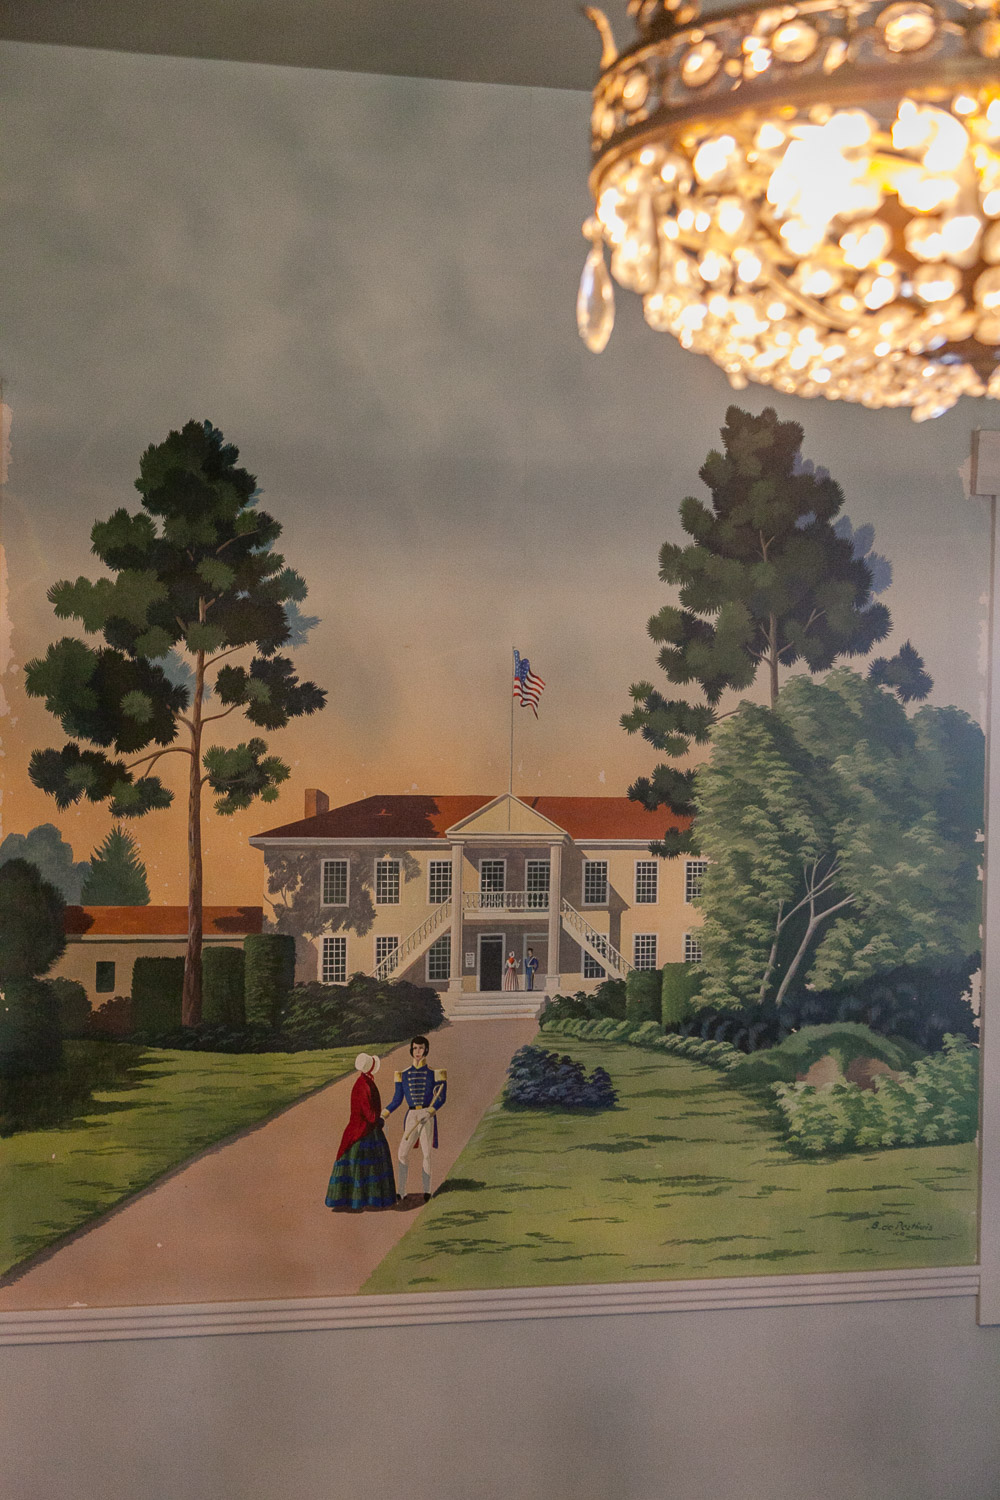 A detail of the charming murals and old chandelier inside the La Mirada location.